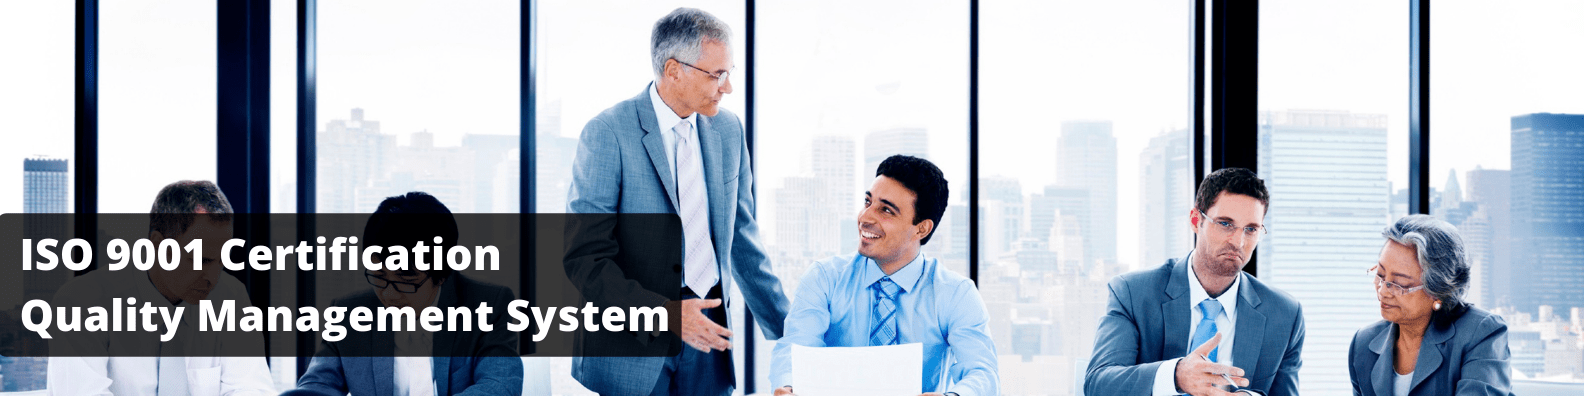 ISO 9001 Certification Quality Management Systems